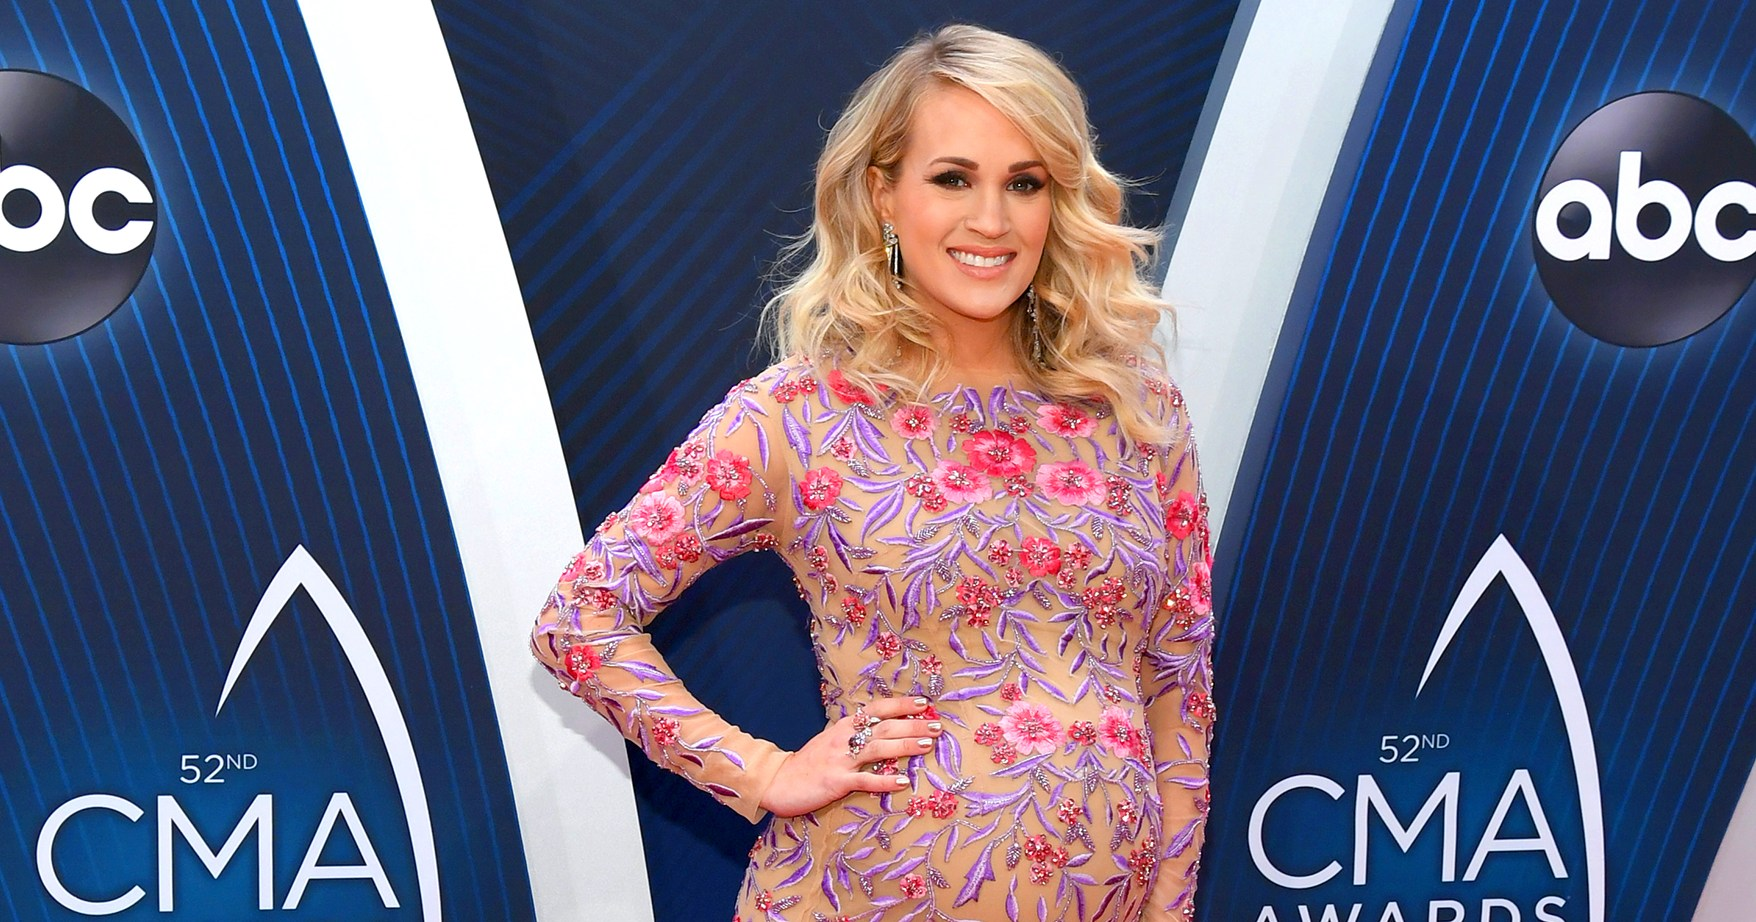 Pregnant Carrie Underwood Gets Help Tying Her Shoes